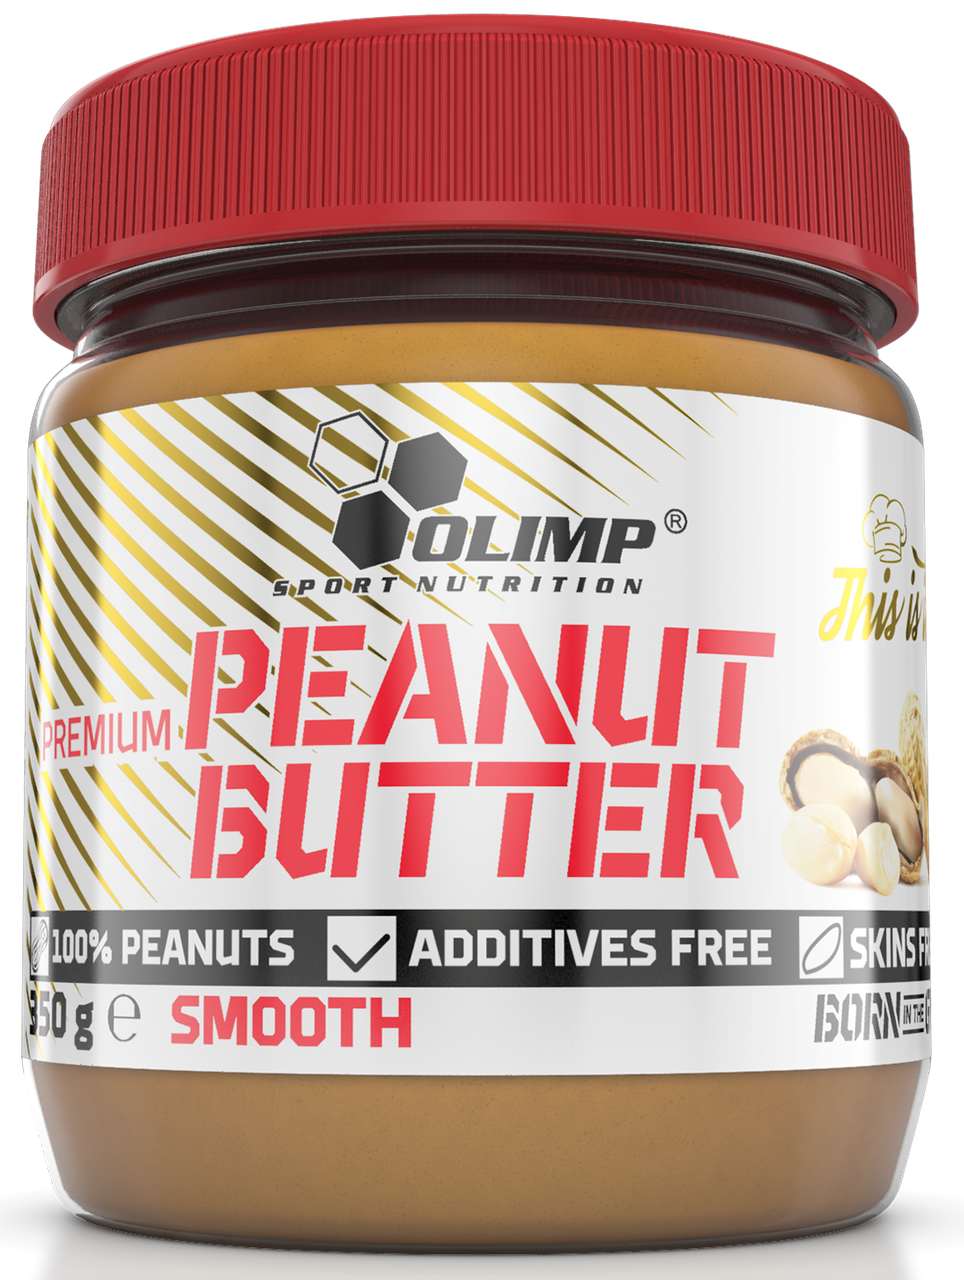 Olimp Premium Peanut Butter Smooth 350g